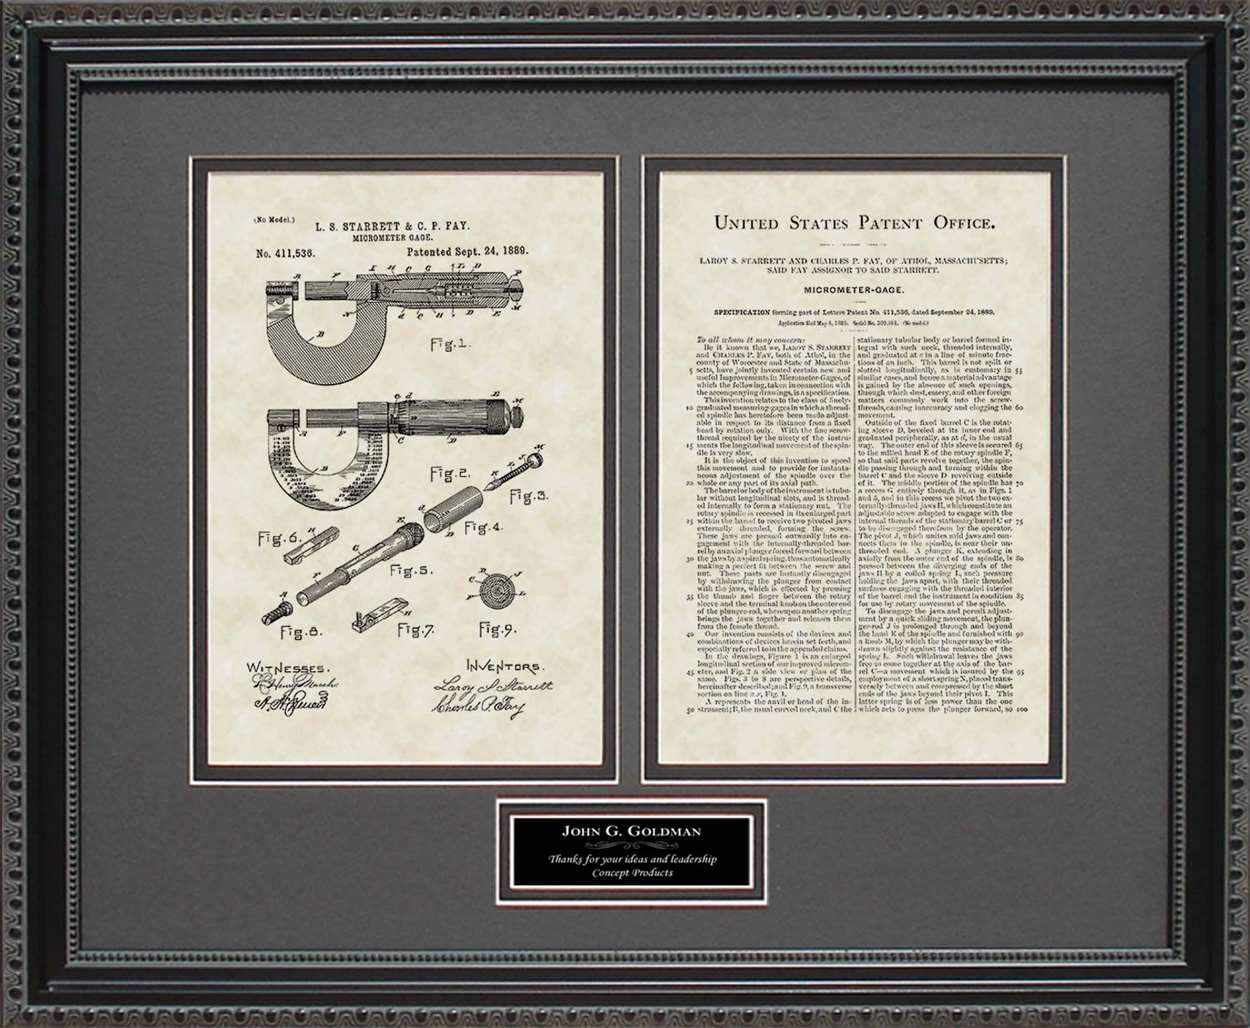 Personalized Micrometer Patent, Art & Copy, Starrett, 1889